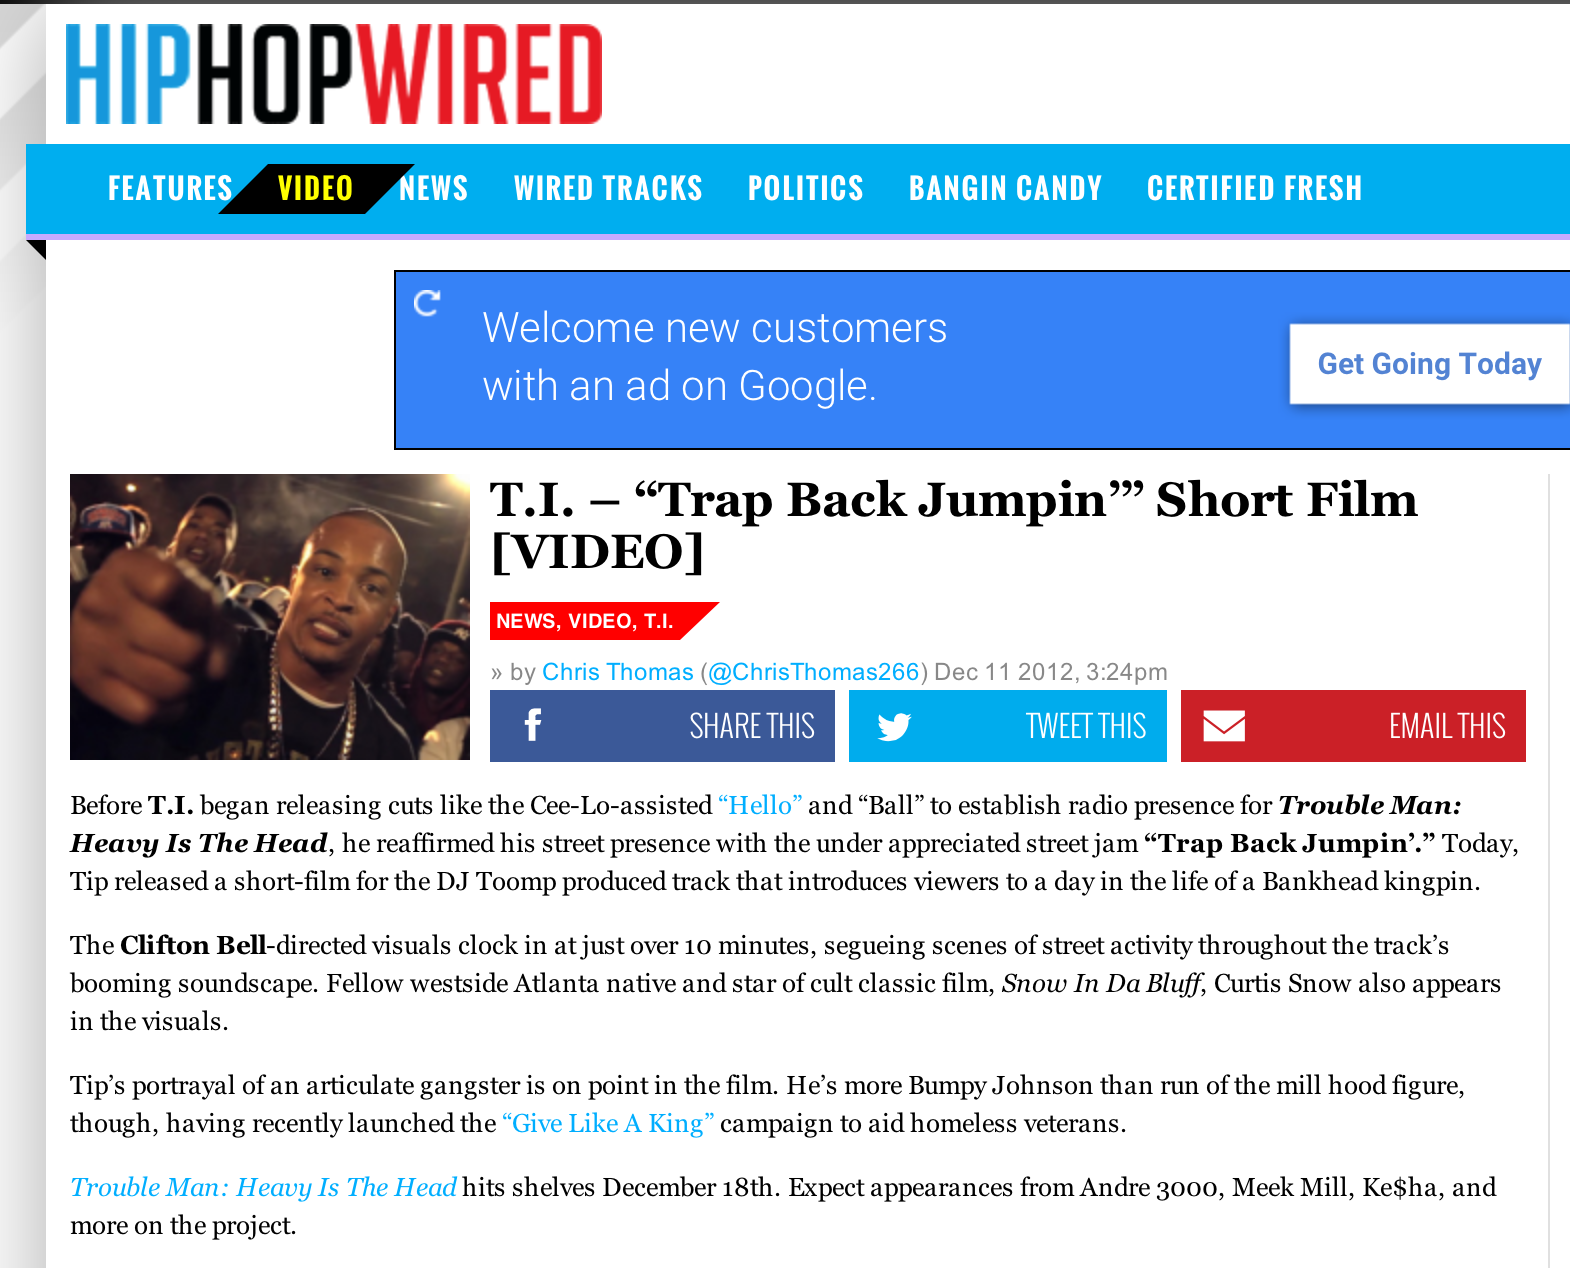 http://hiphopwired.com